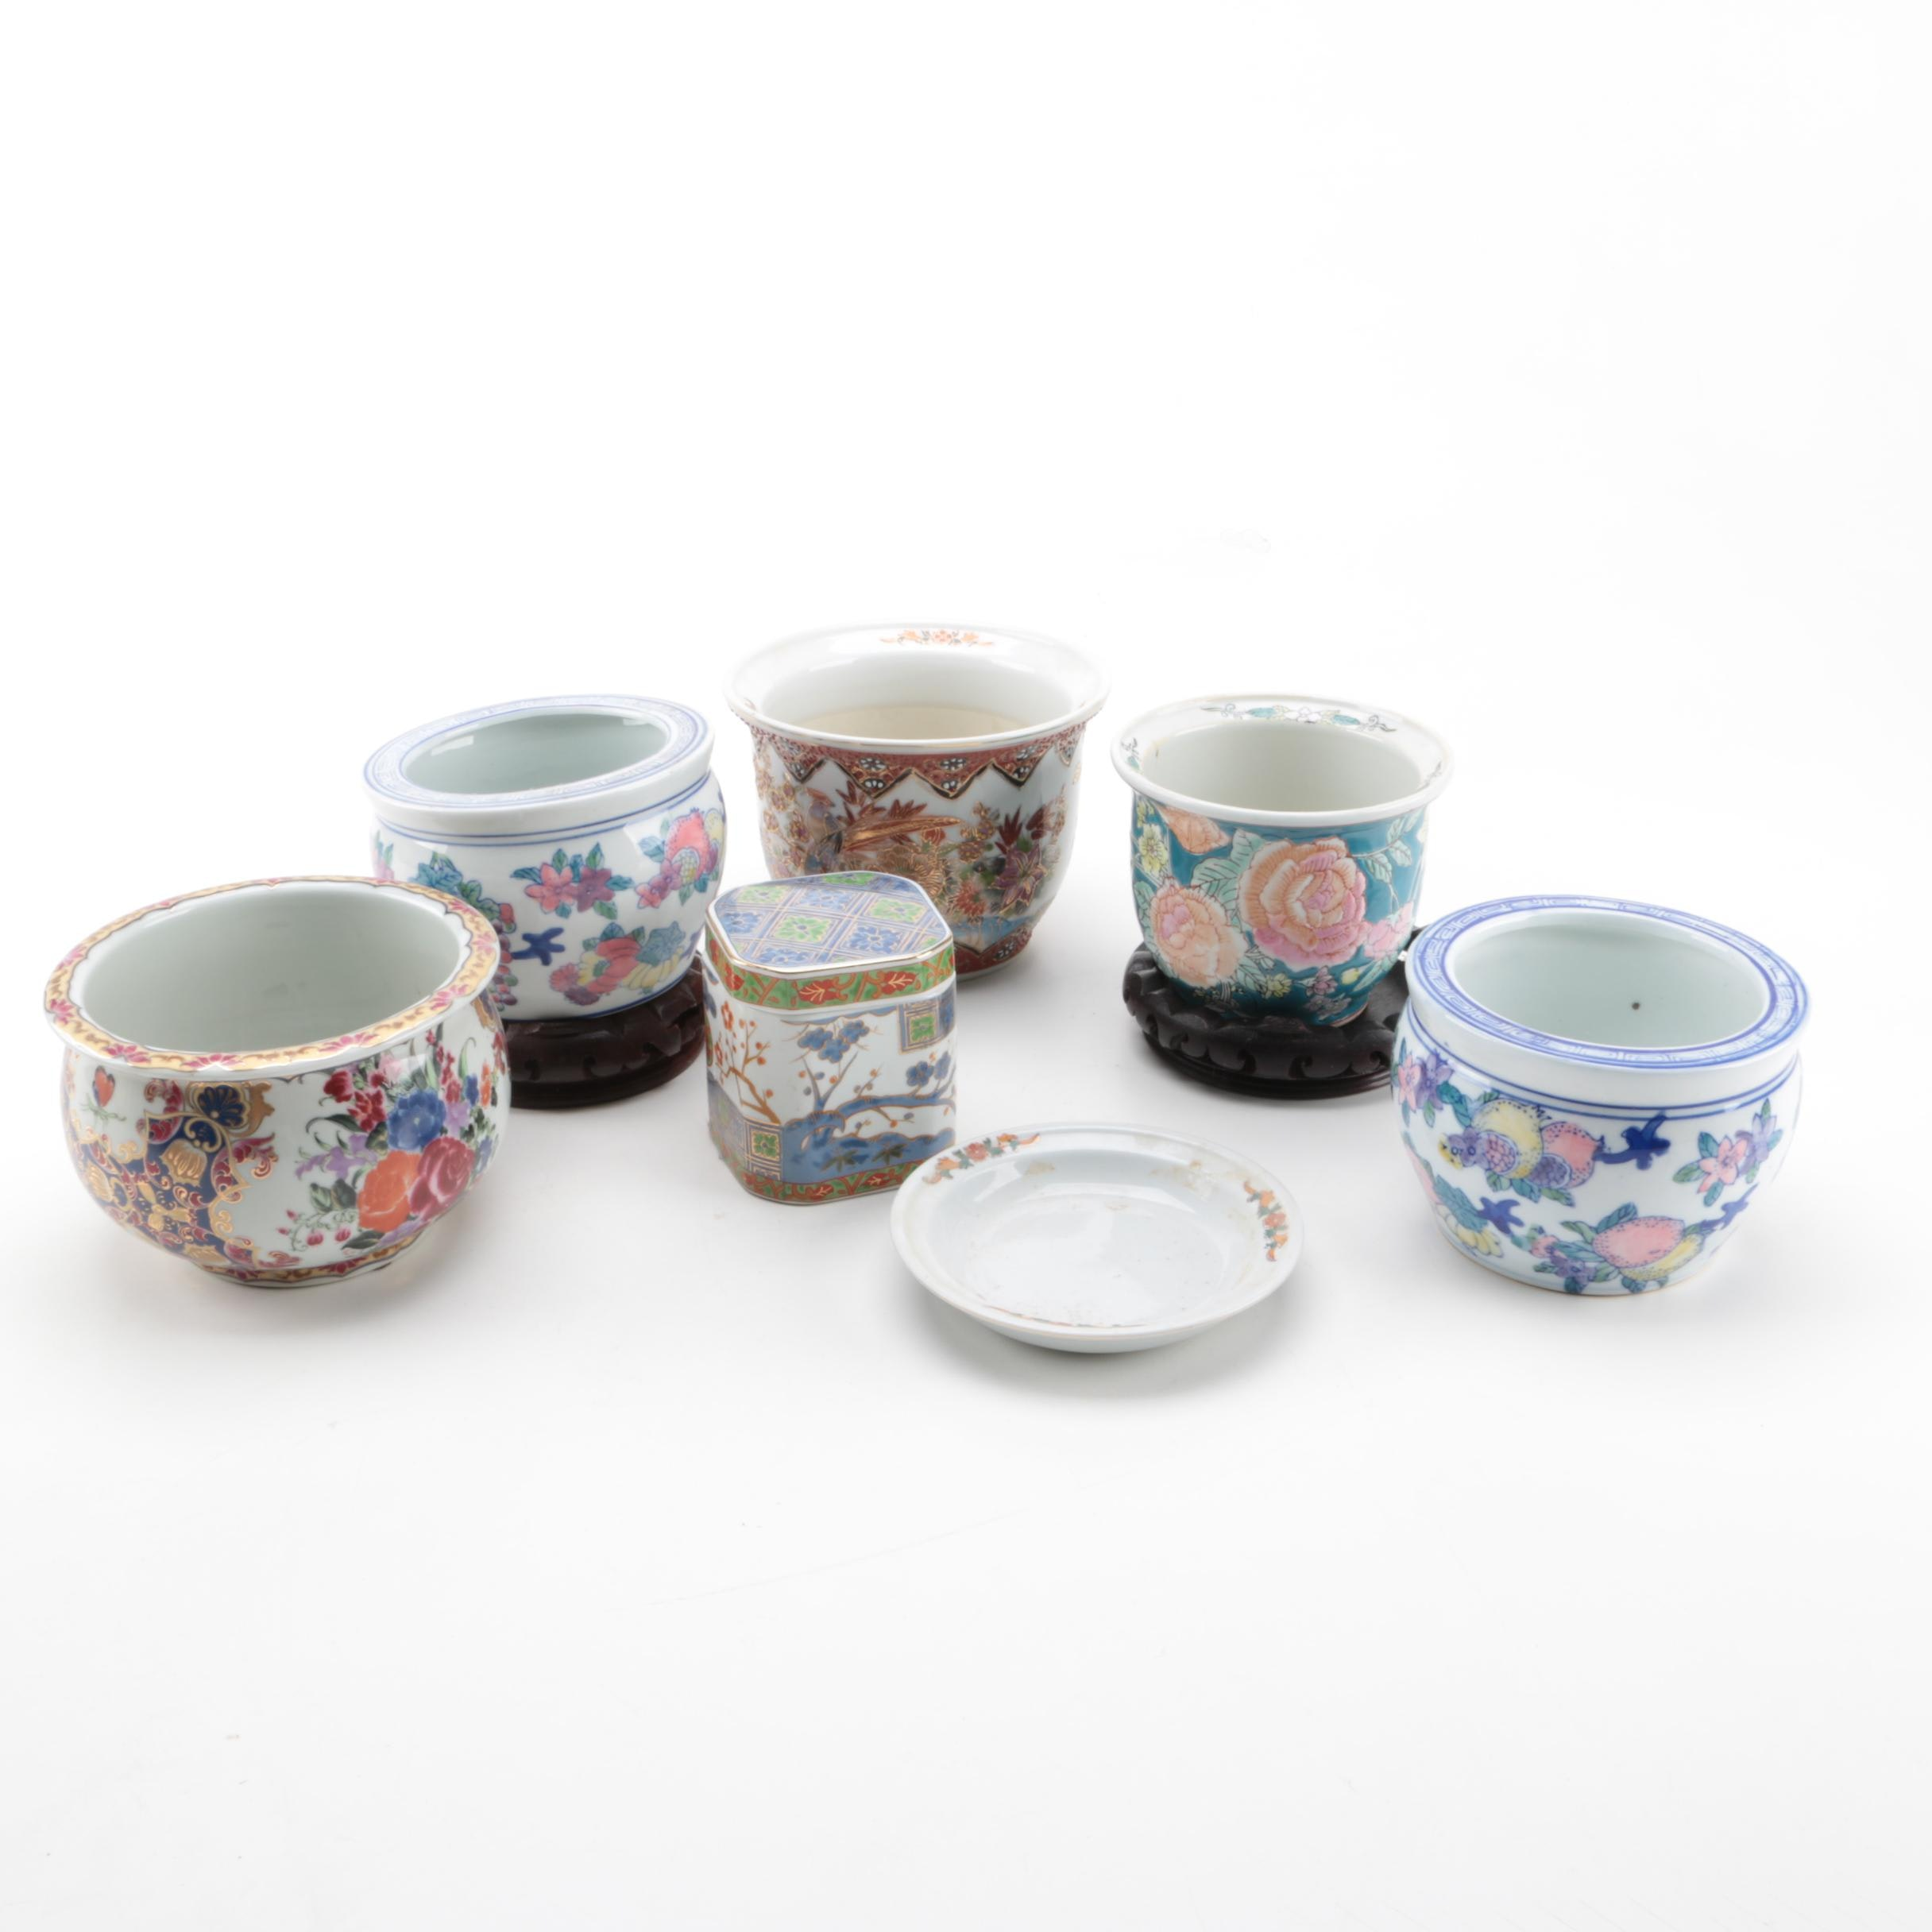 East Asian Porcelain Planters, Canister, Plate, and Carved Wood Stands